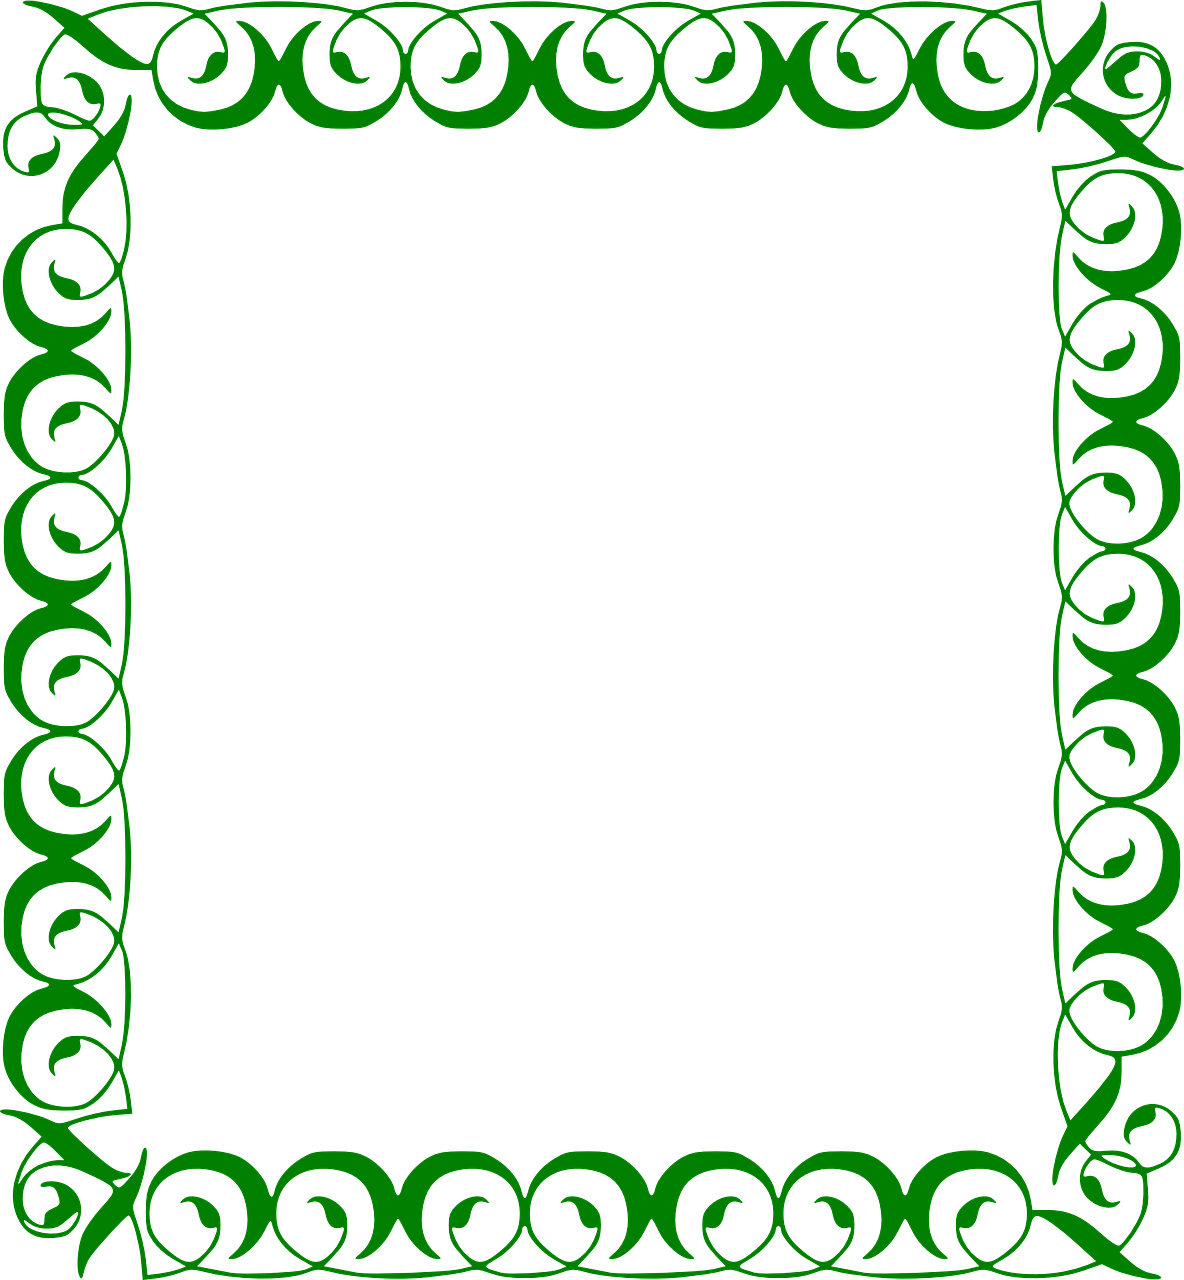 green frame ornamented free vector graphic on pixabay https creativecommons org licenses publicdomain